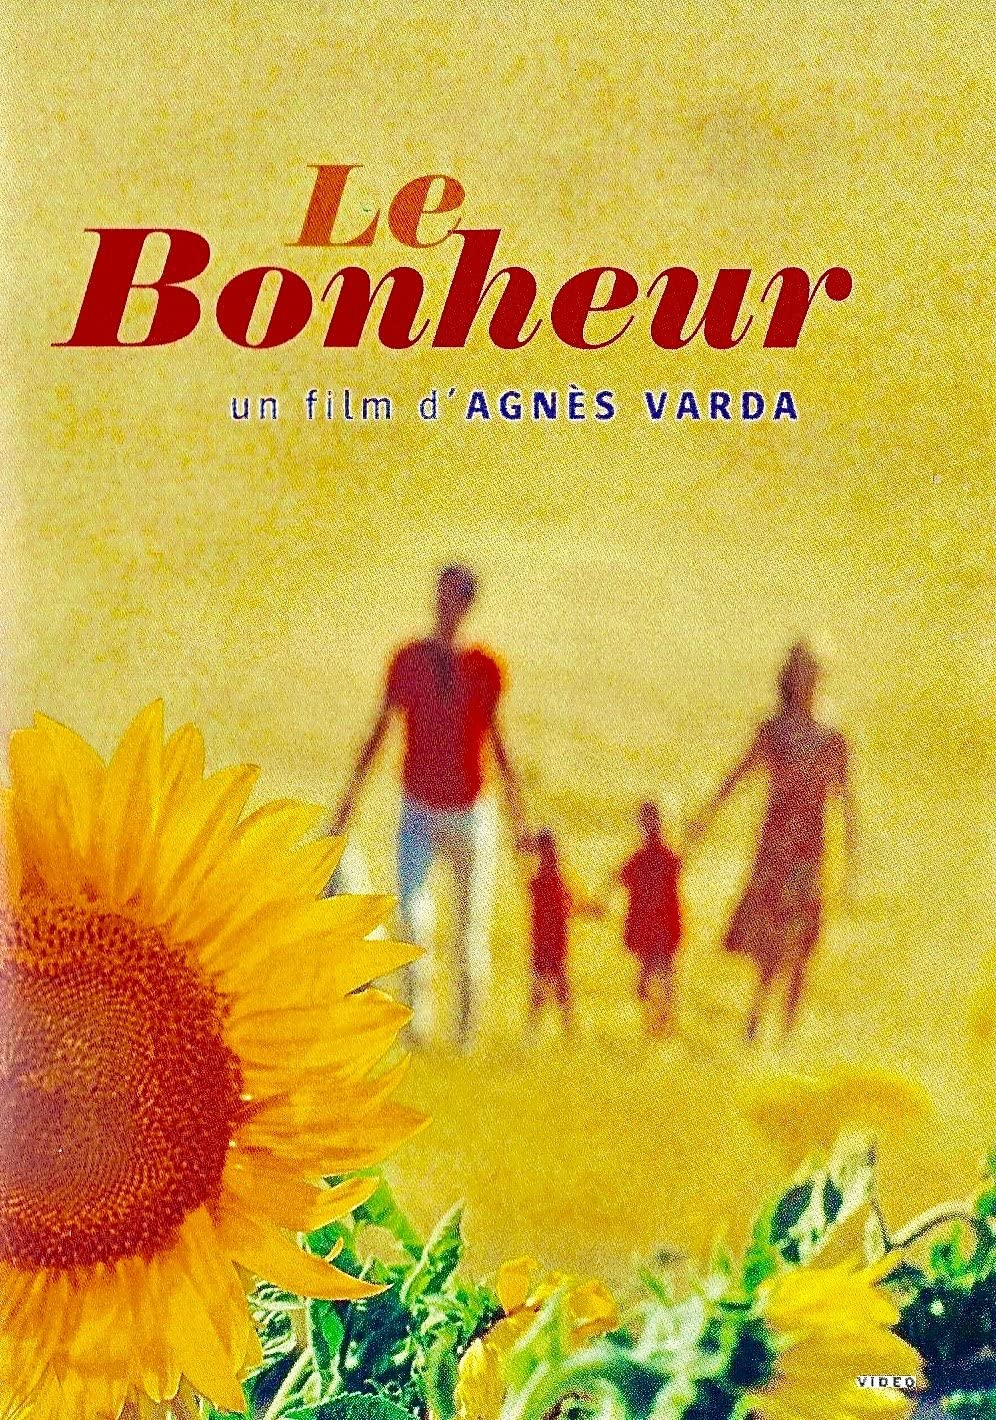 Le bonheur (1964) [DVD]: Amazon.co.uk: DVD & Blu-ray